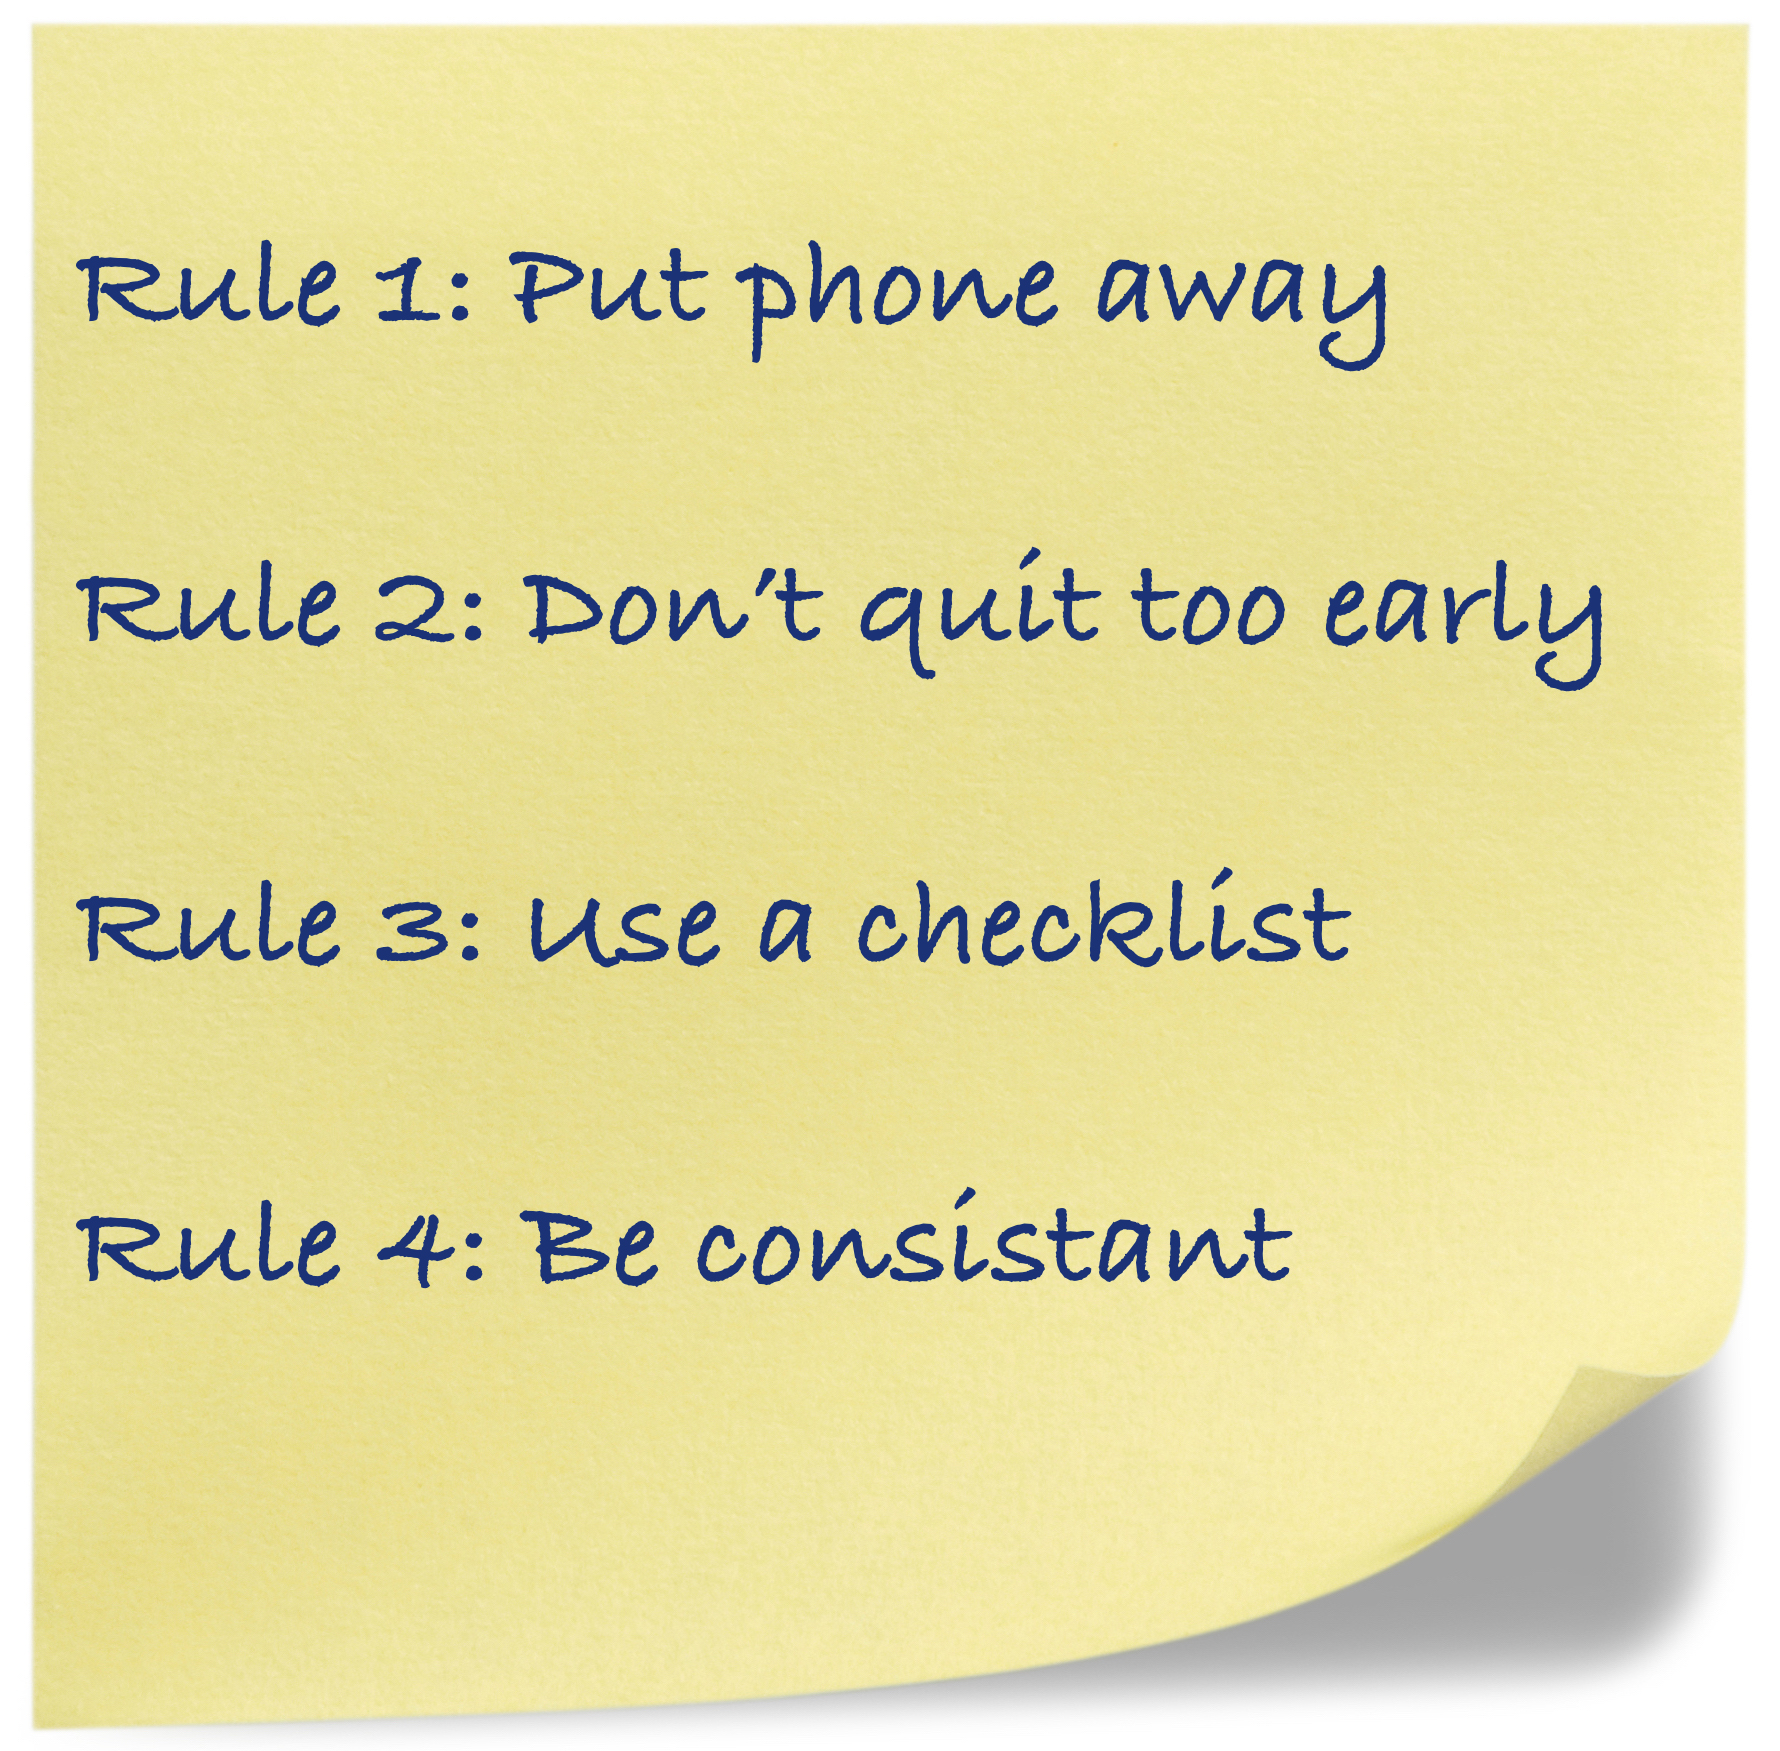 4 Rules when Professionally Cleaning a Home